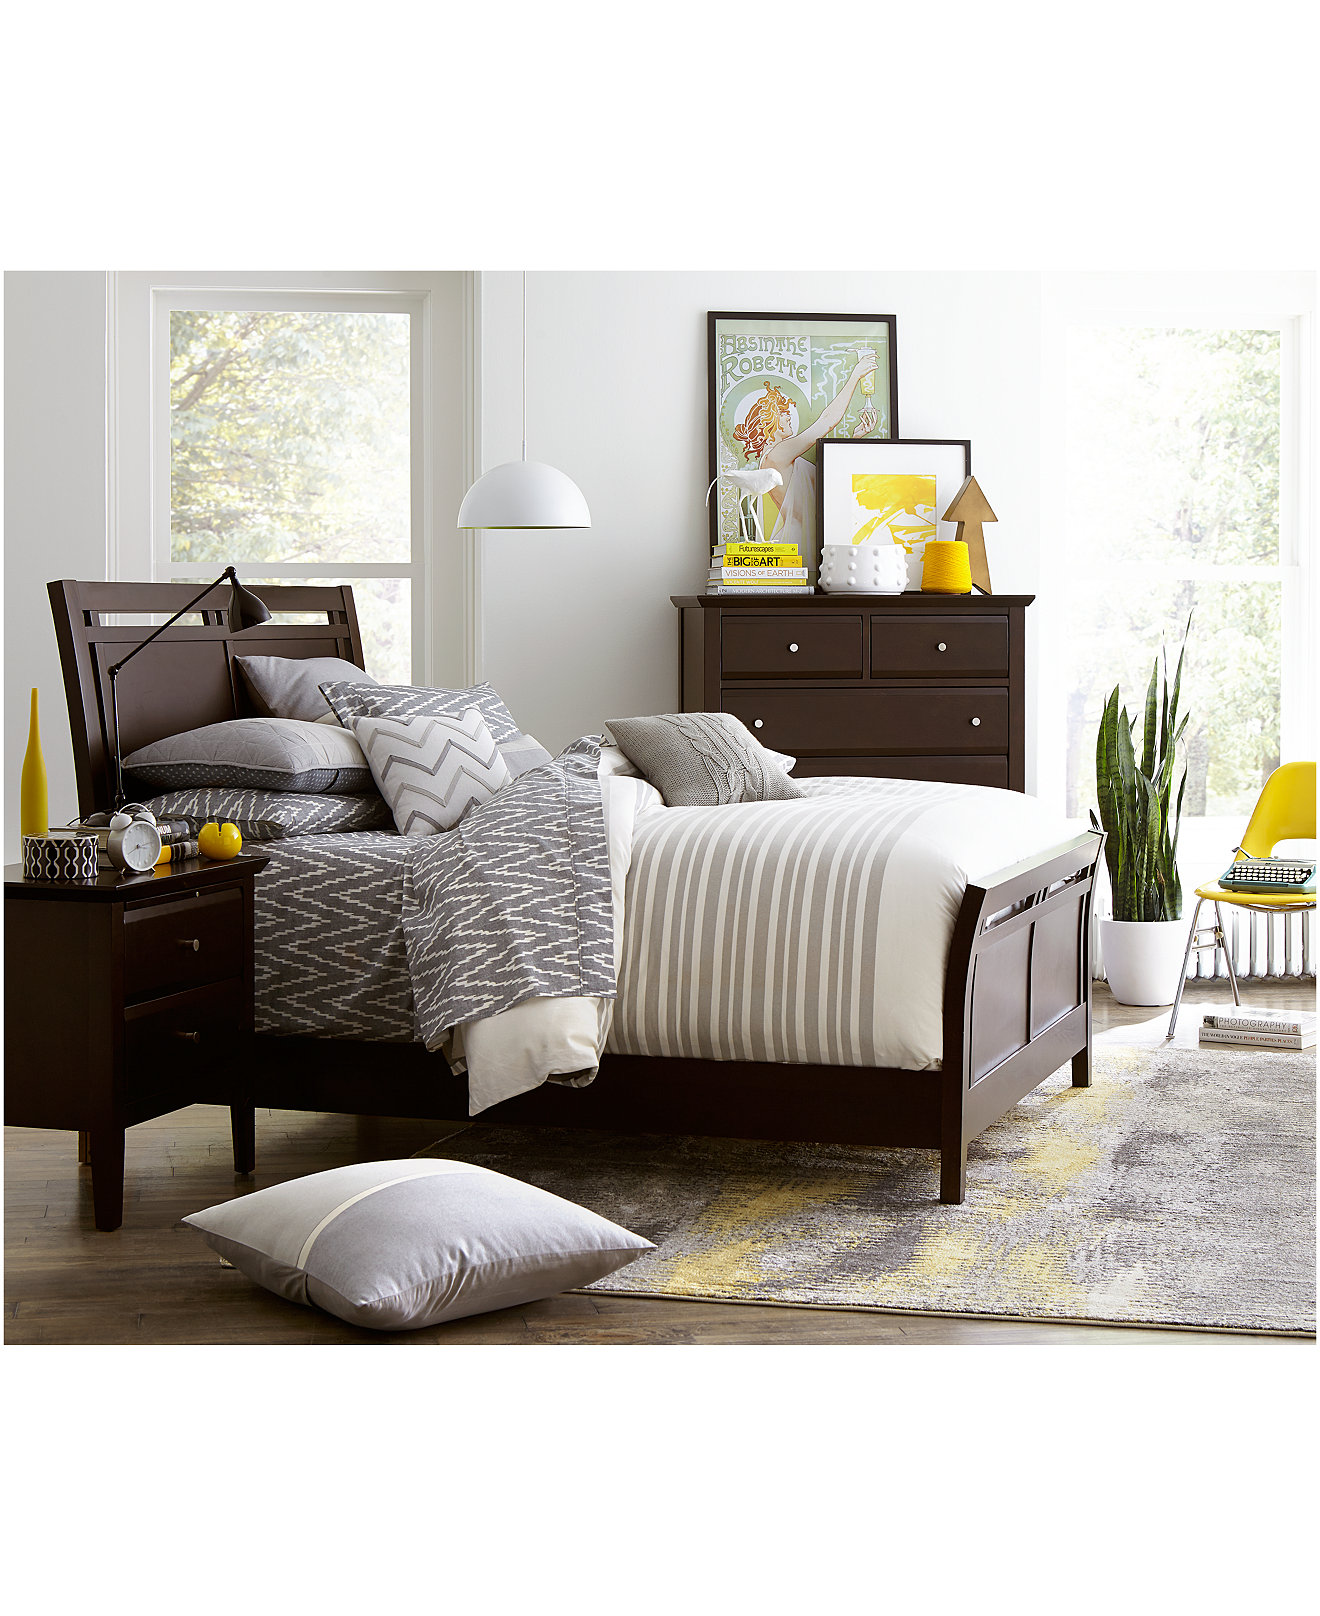 queen anne rice bedroom set trend home design and decor